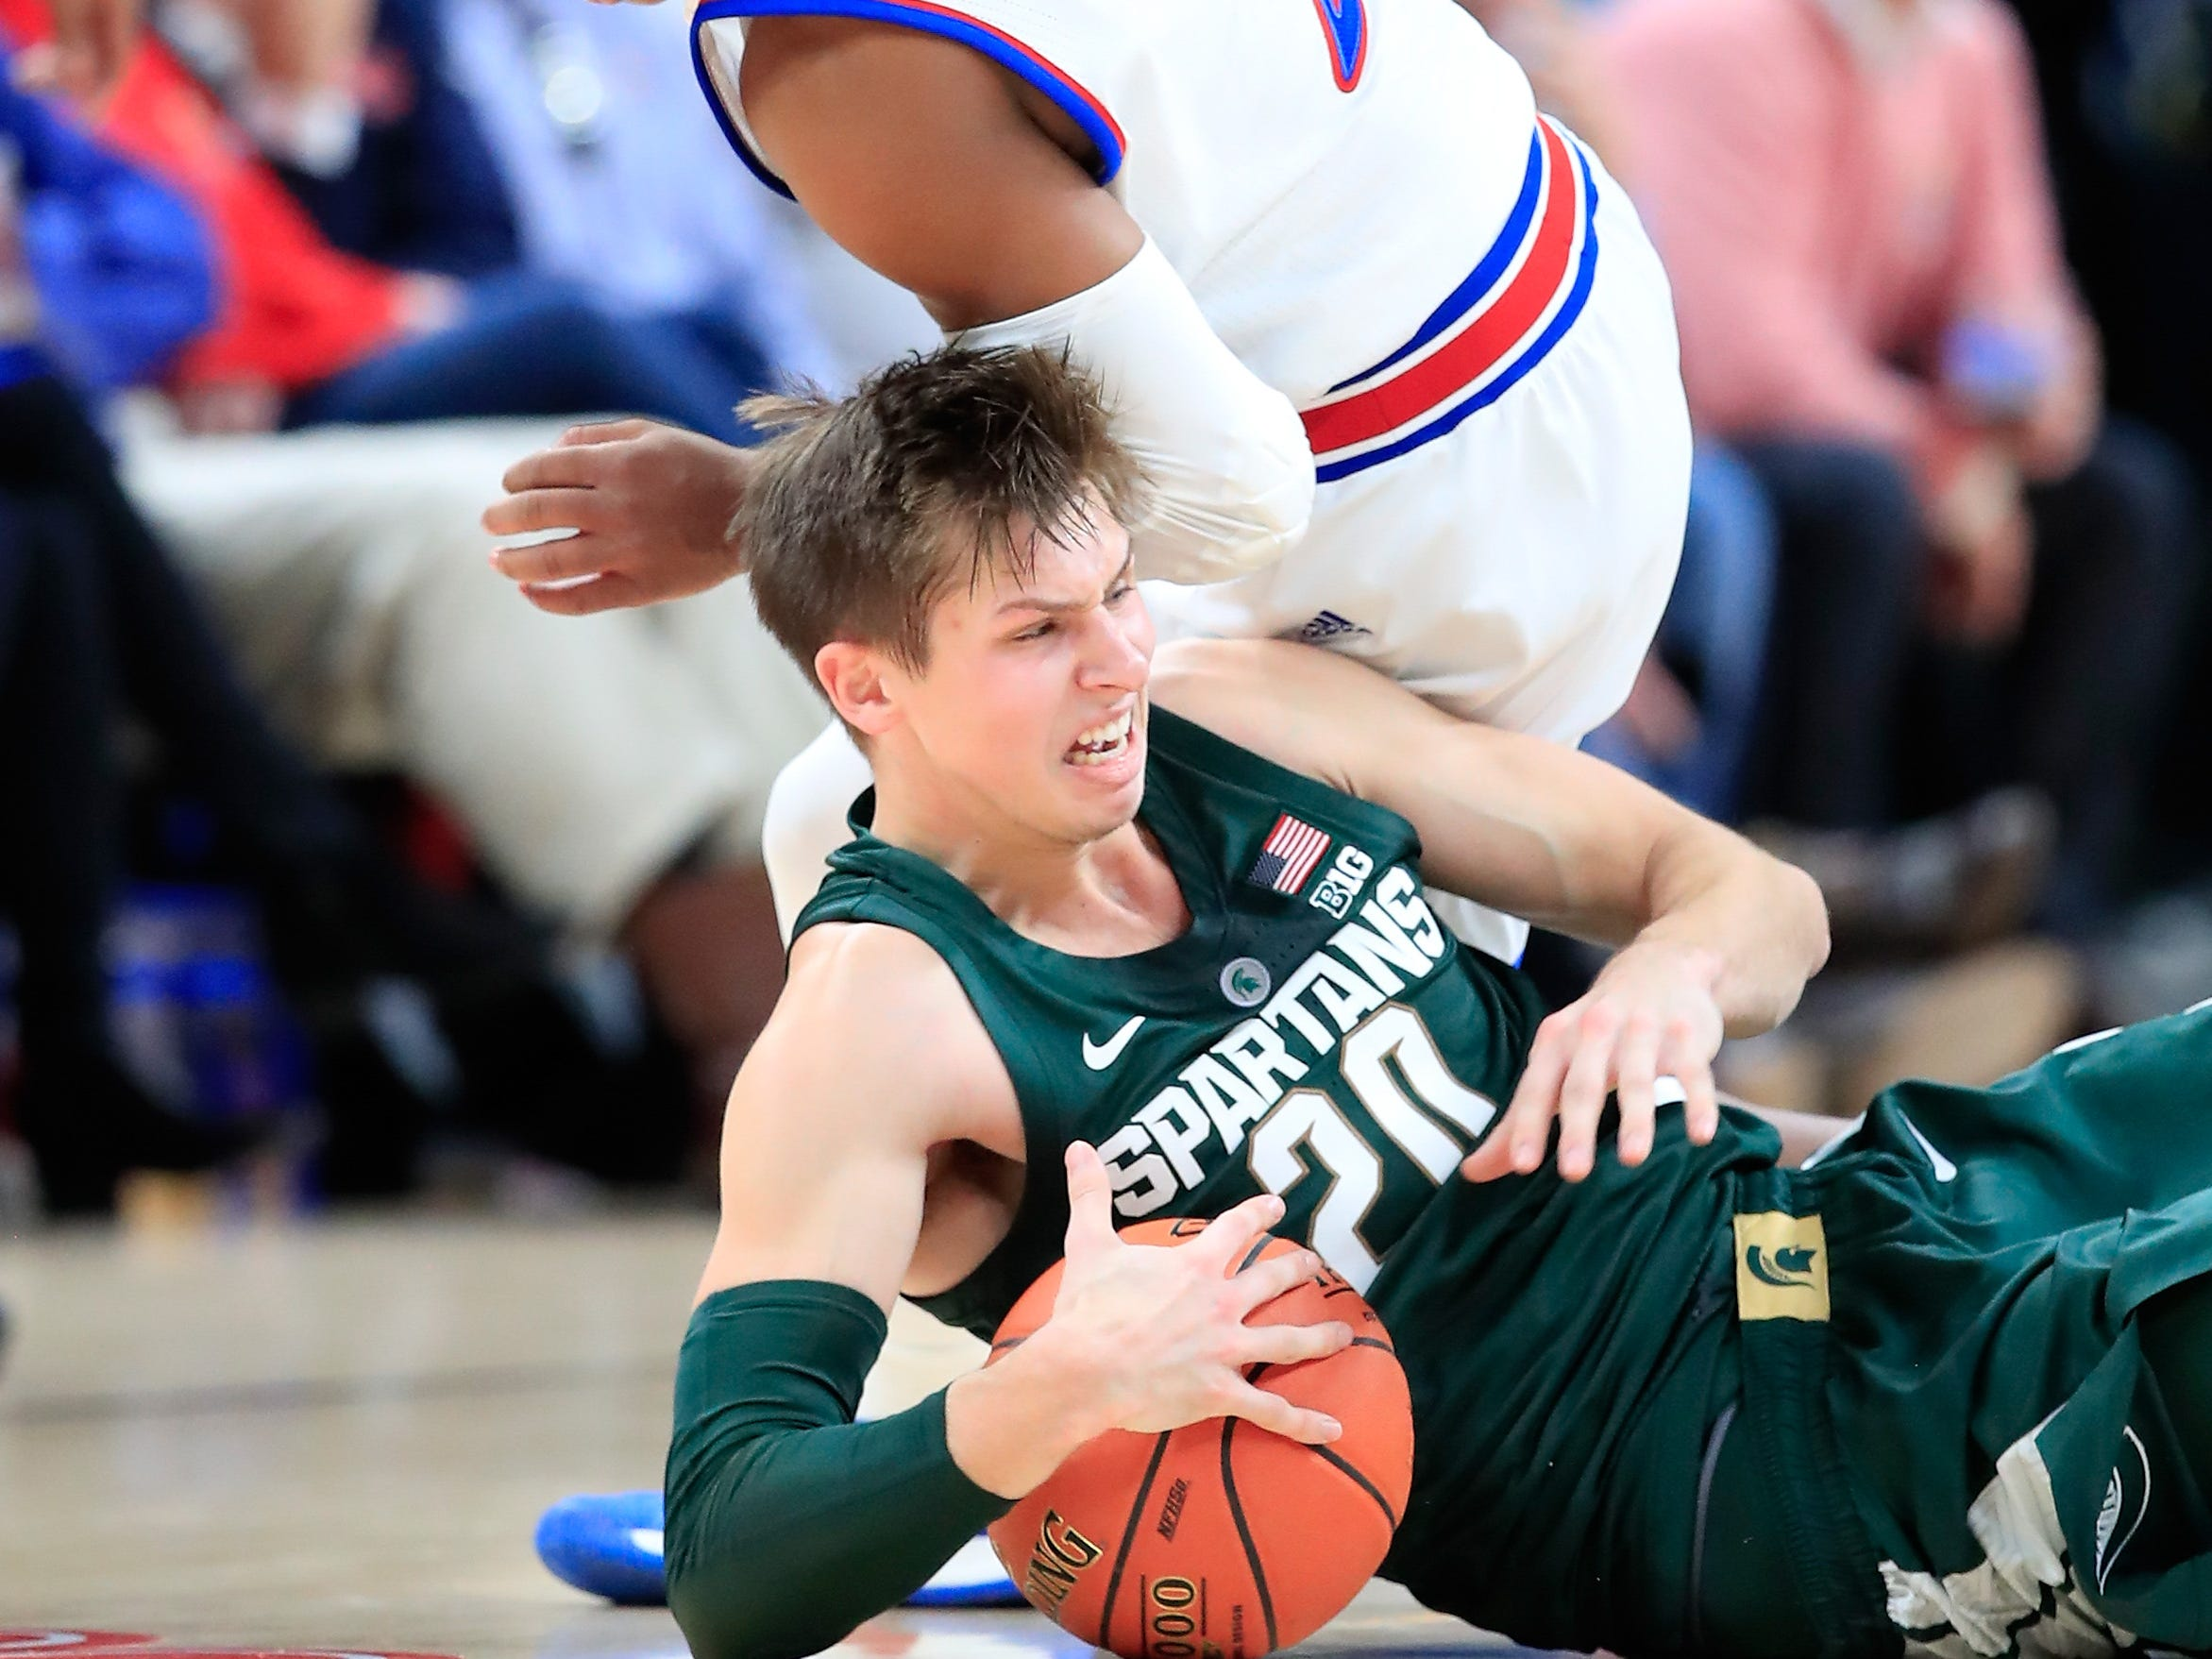 Charlie Moore #2 of the Kansas Jayhawks and Matt McQuaid #20 of the Michigan State Spartans battle for a loose ball during the State Farm Champions Classic at Bankers Life Fieldhouse on November 6, 2018 in Indianapolis, Indiana.